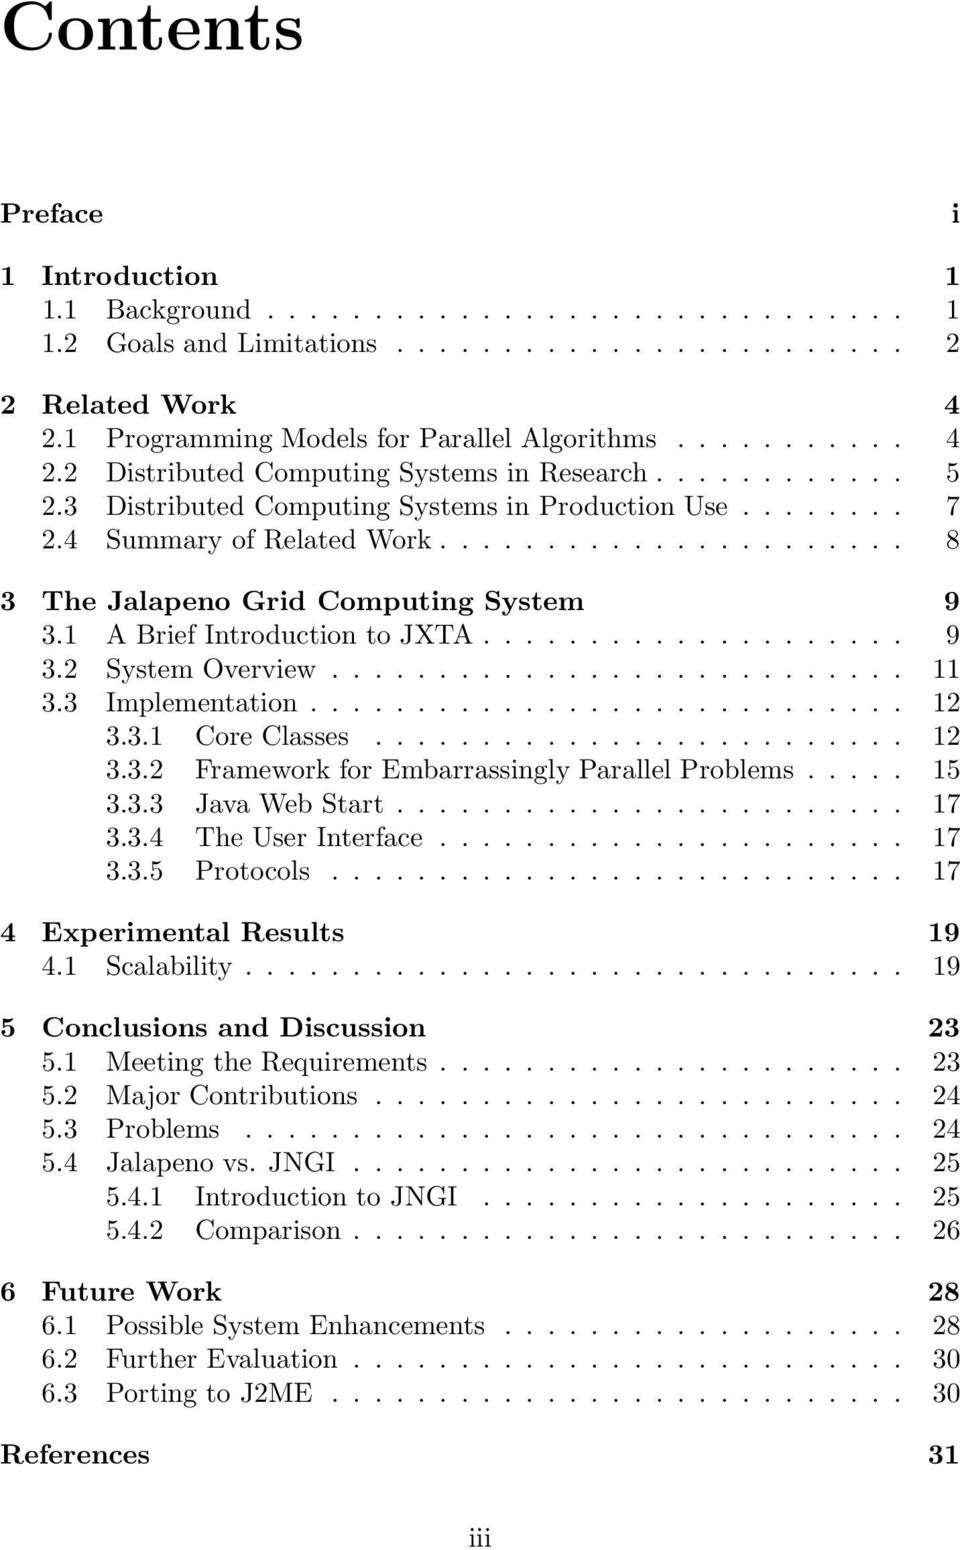 ..................... 8 3 The Jalapeno Grid Computing System 9 3.1 A Brief Introduction to JXTA.................... 9 3.2 System Overview........................... 11 3.3 Implementation............................ 12 3.